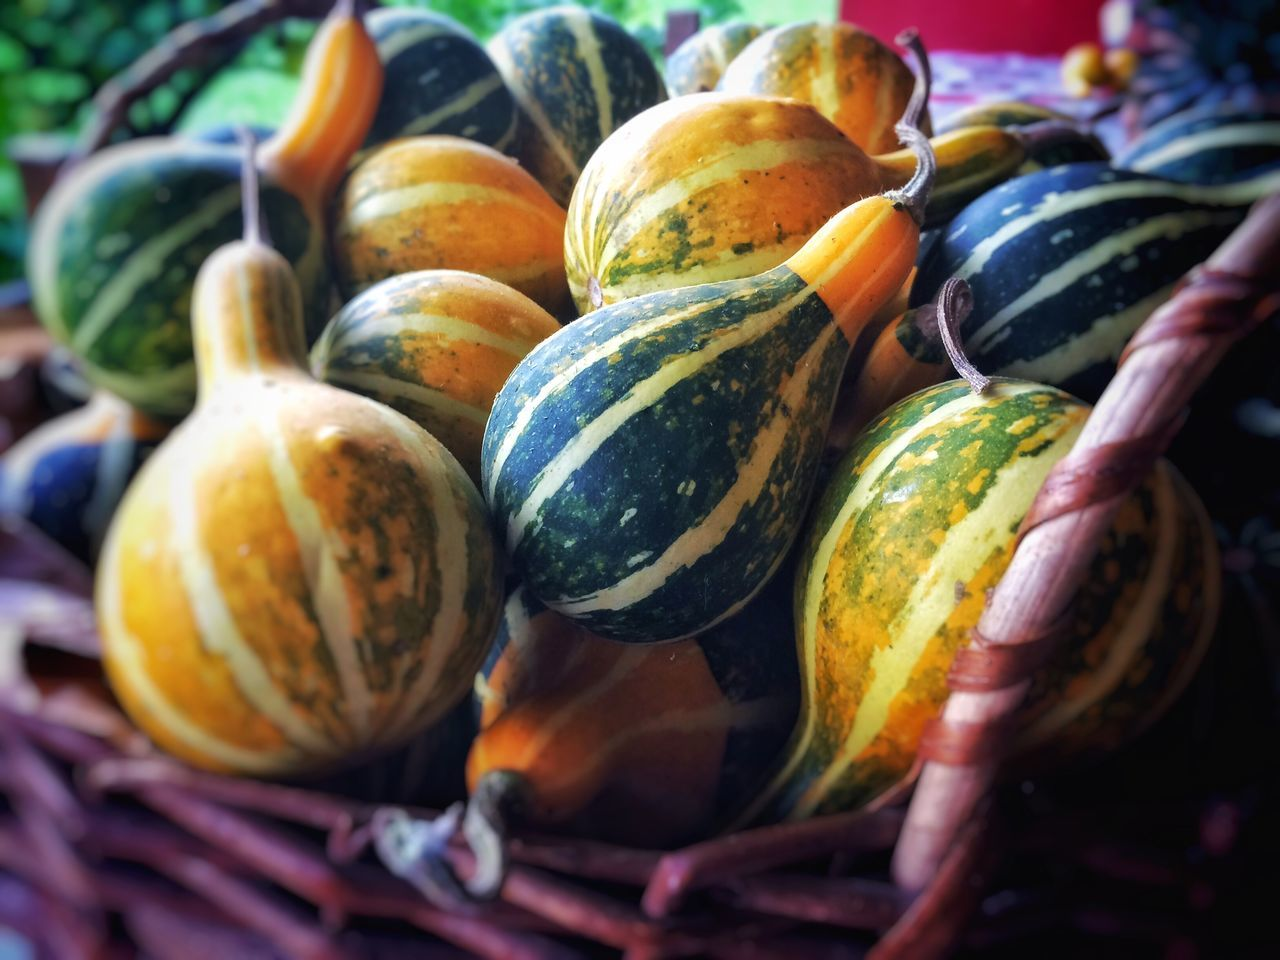 Pumpkins Halloween Yellow Green Food Selective Focus Healthy Eating Vegetable Organic Pumpkin Choice Large Group Of Objects Freshness Market Retail Display Green Color Agriculture